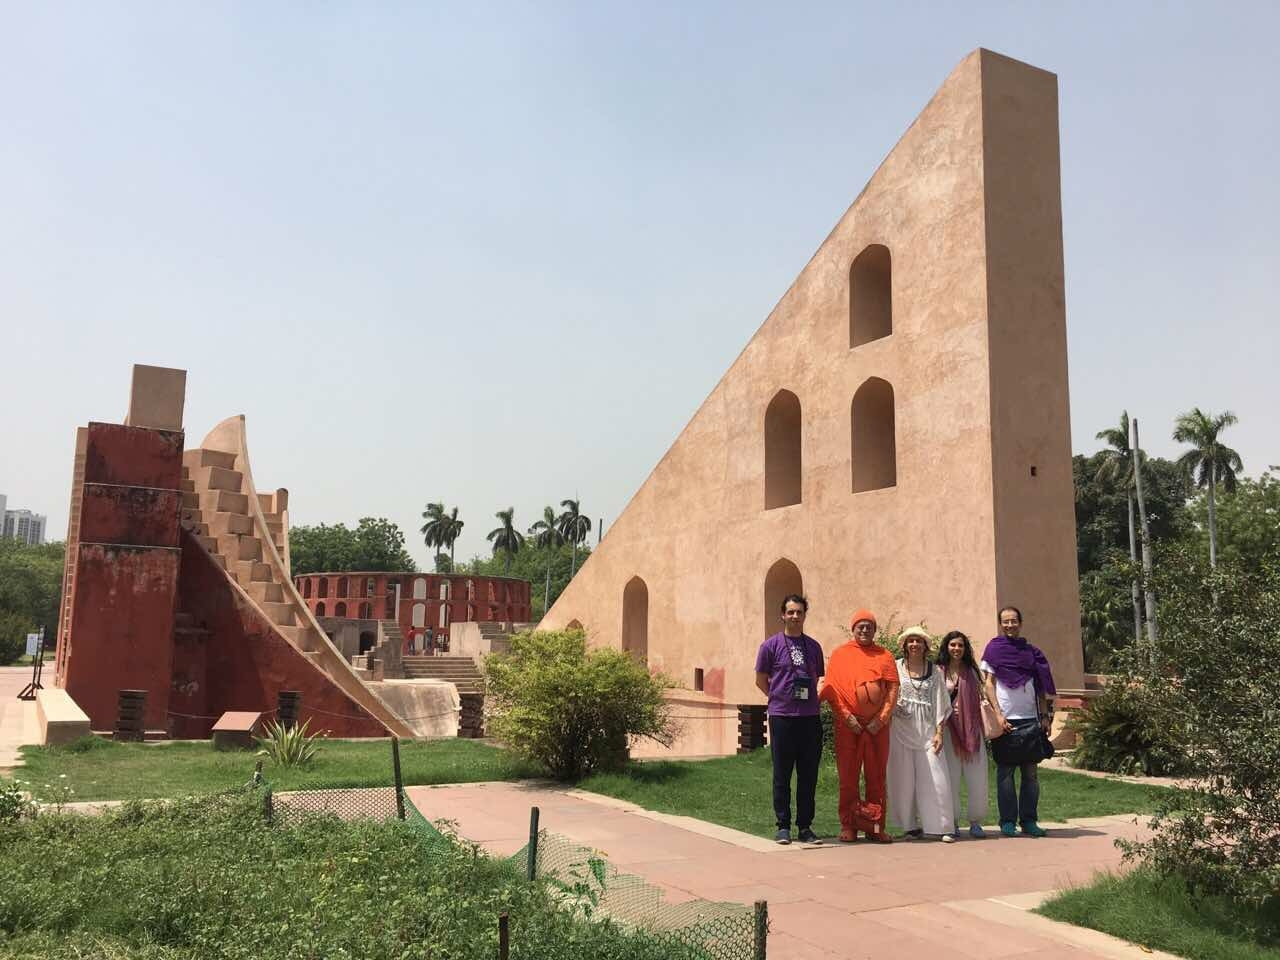 Jantar Mantar, New Dillí, India - 2017, June